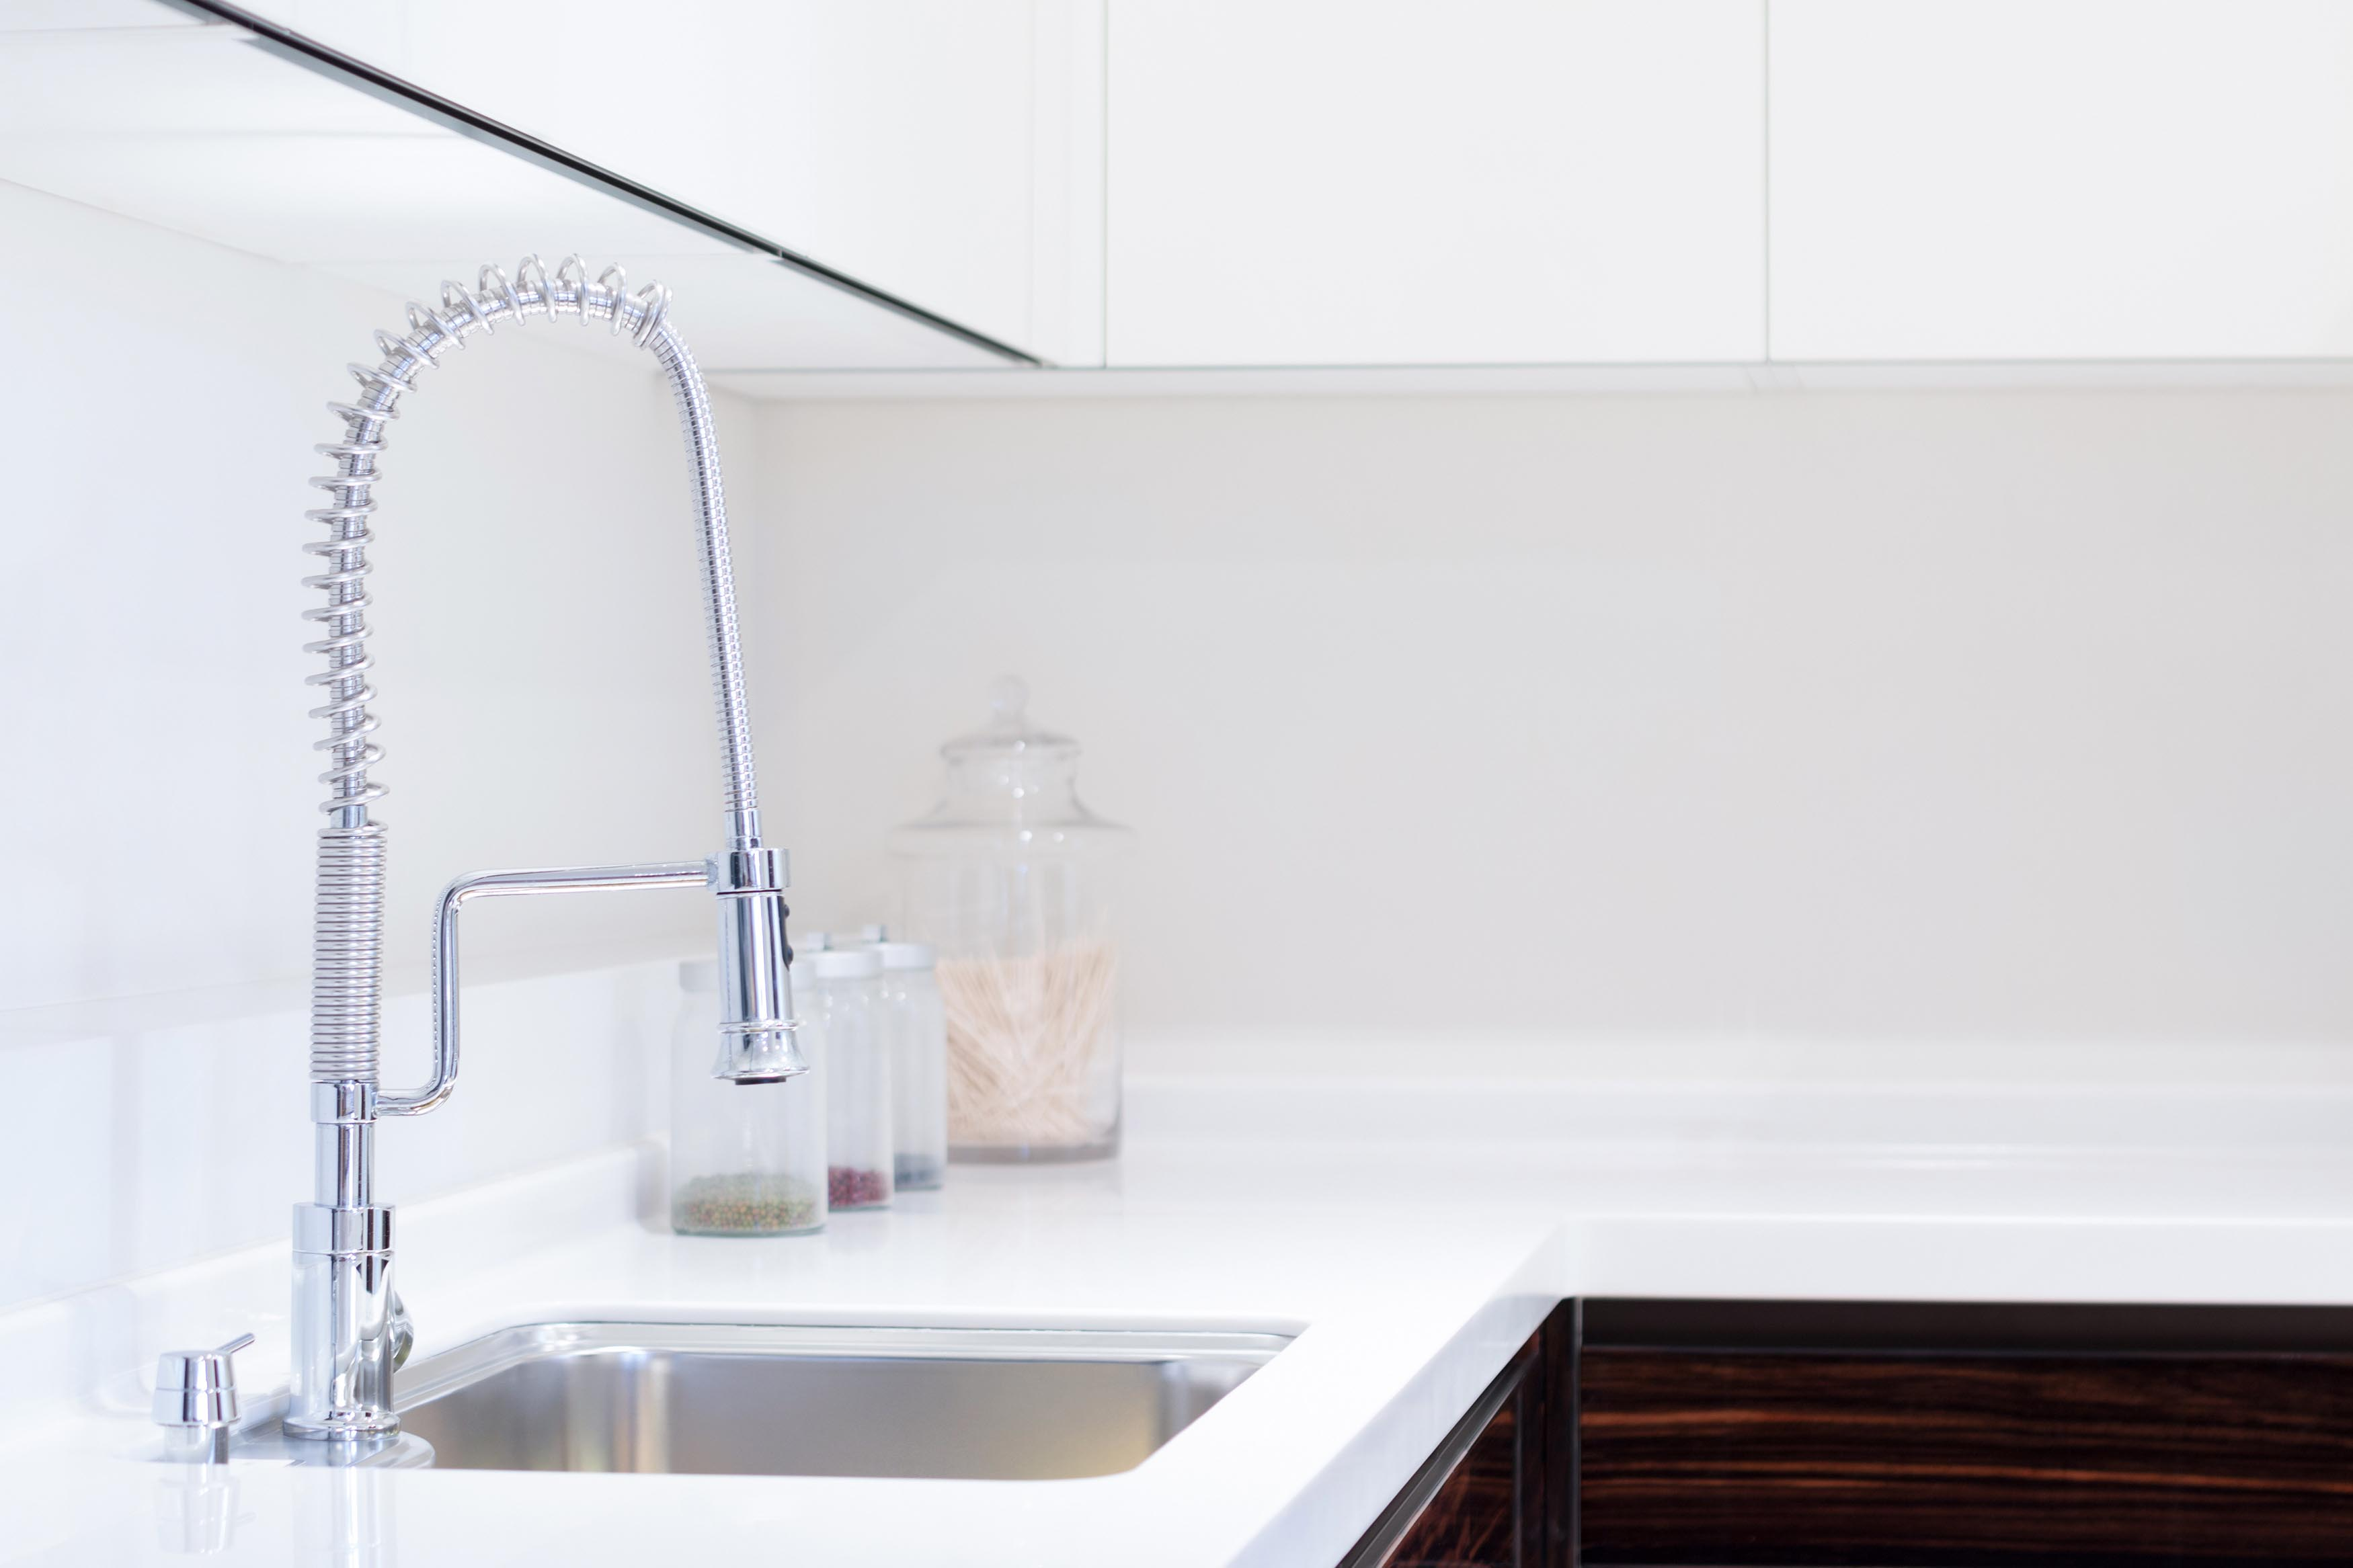 Canberra Kitchen sinks